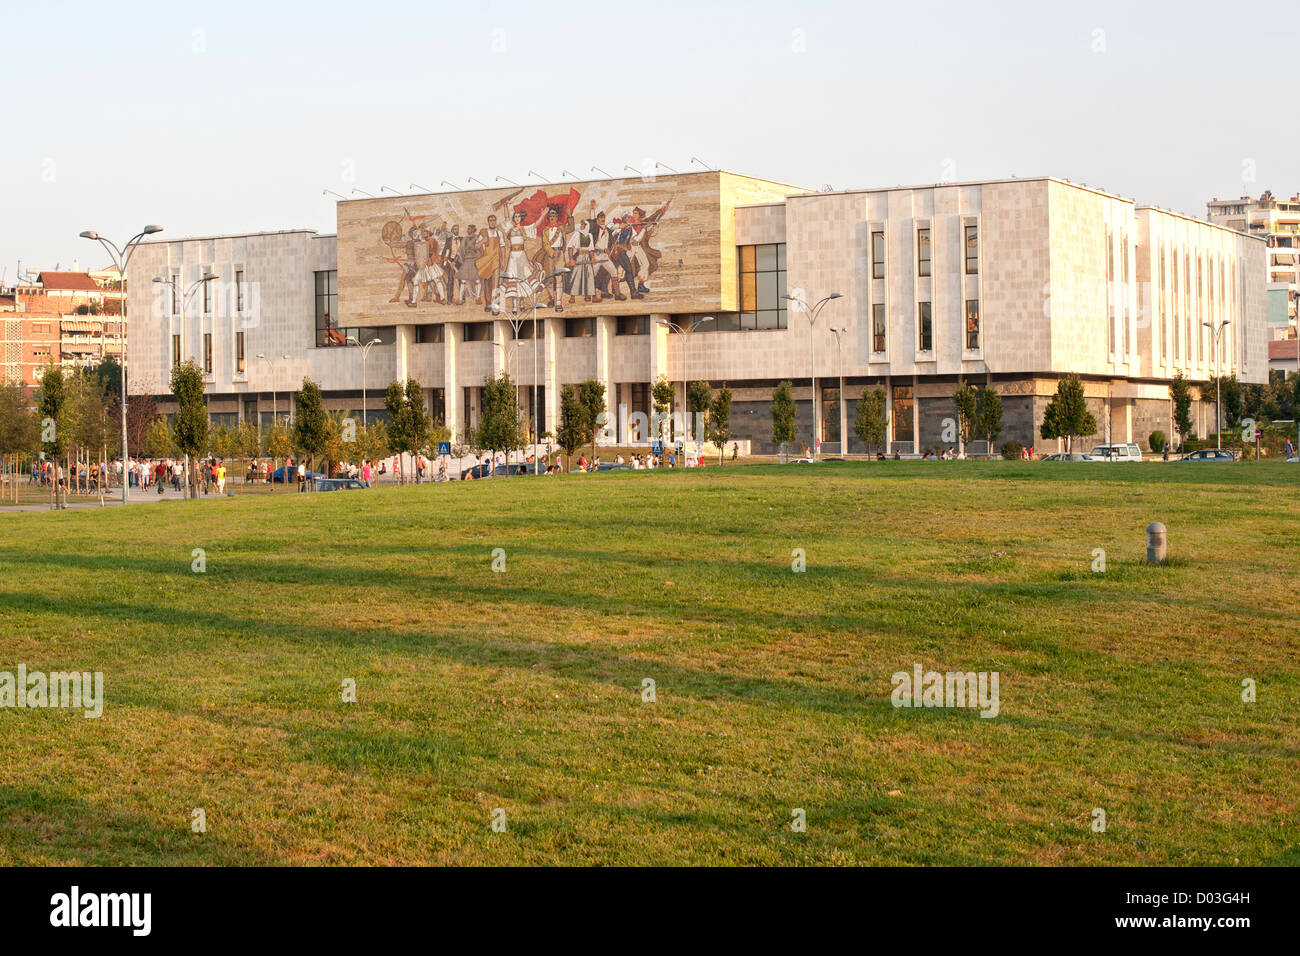 The National Historical Museum in Tirana, the capital of Albania. Stock Photo